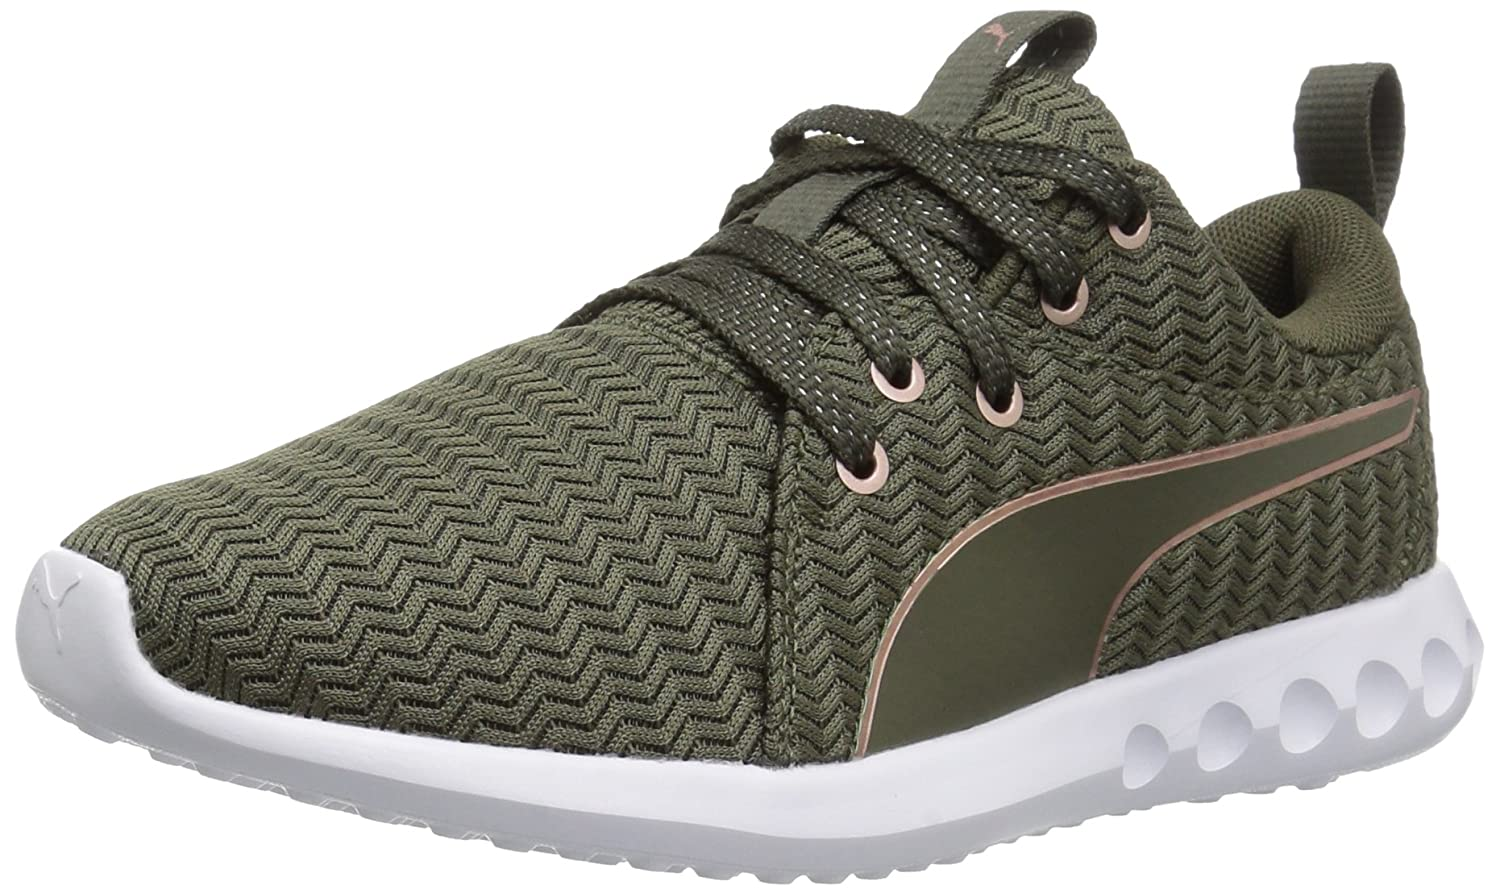 PUMA Women's Carson 2 Wn Sneaker B01MRY0PQL 11 B(M) US|Olive Night-rose Gold